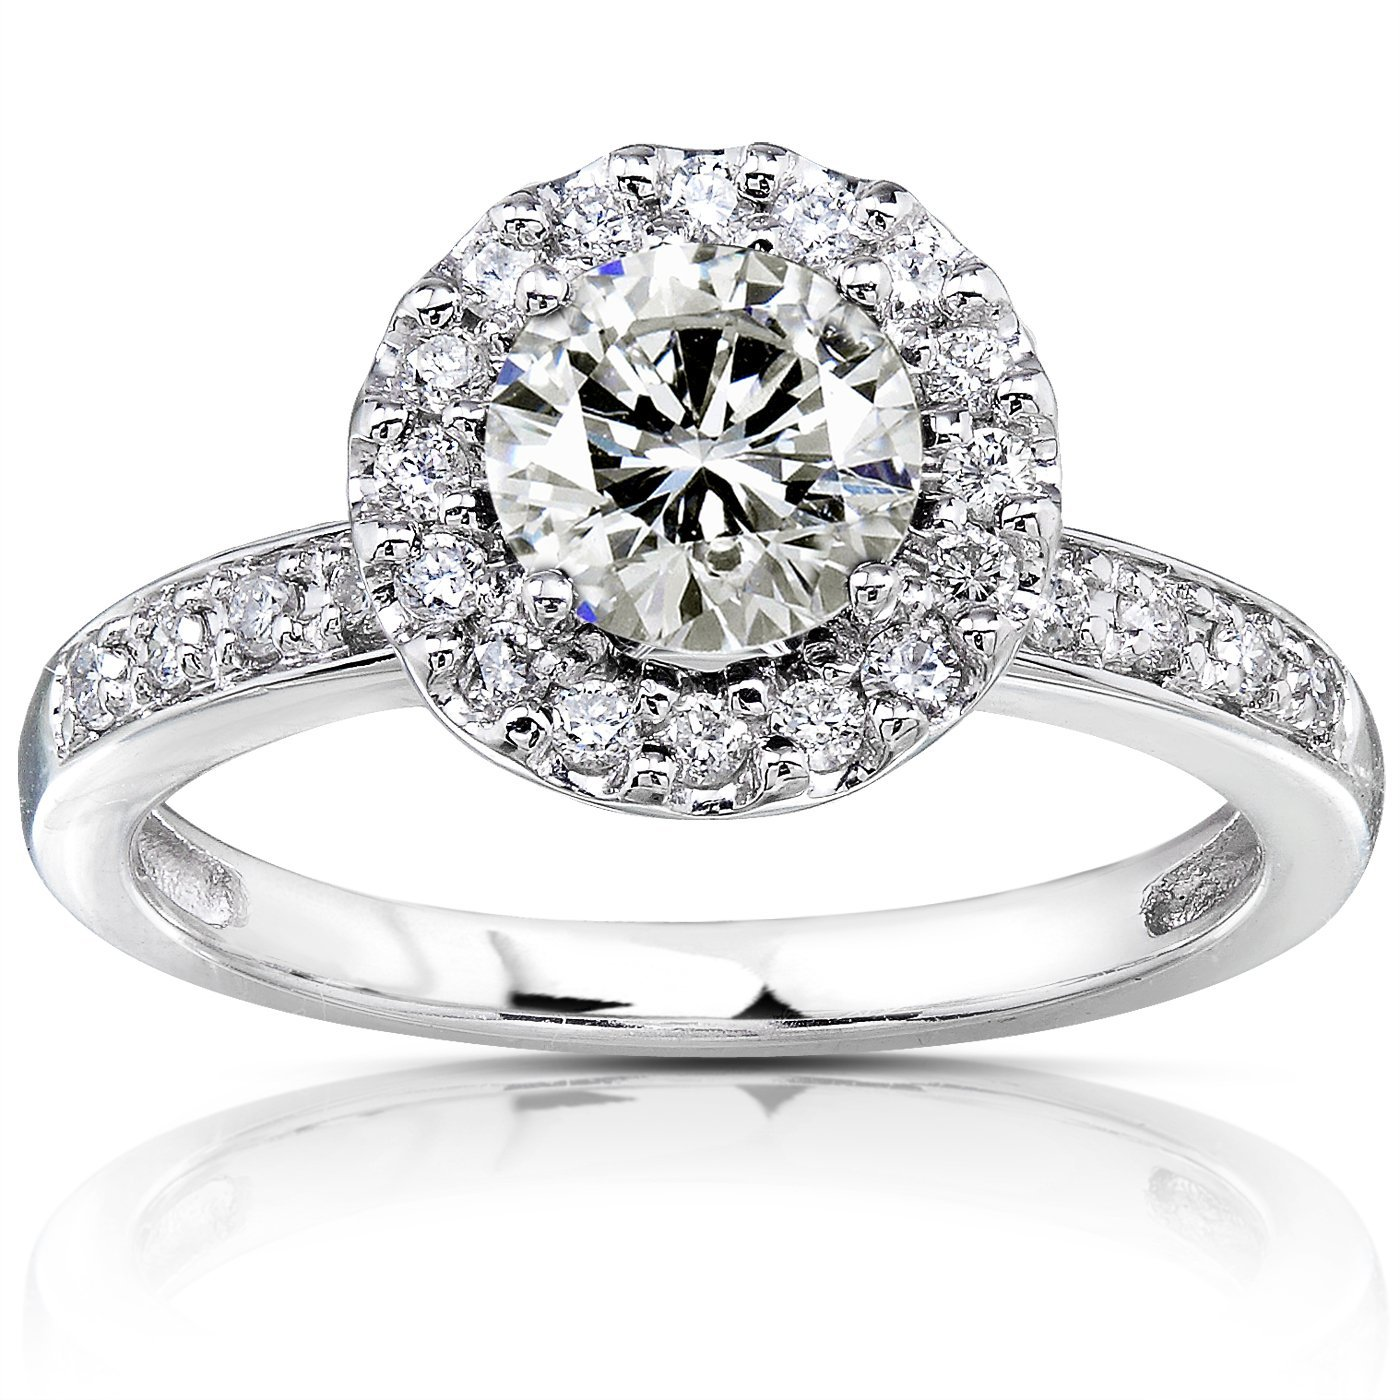 cash for diamond rings - Selling Wedding Ring